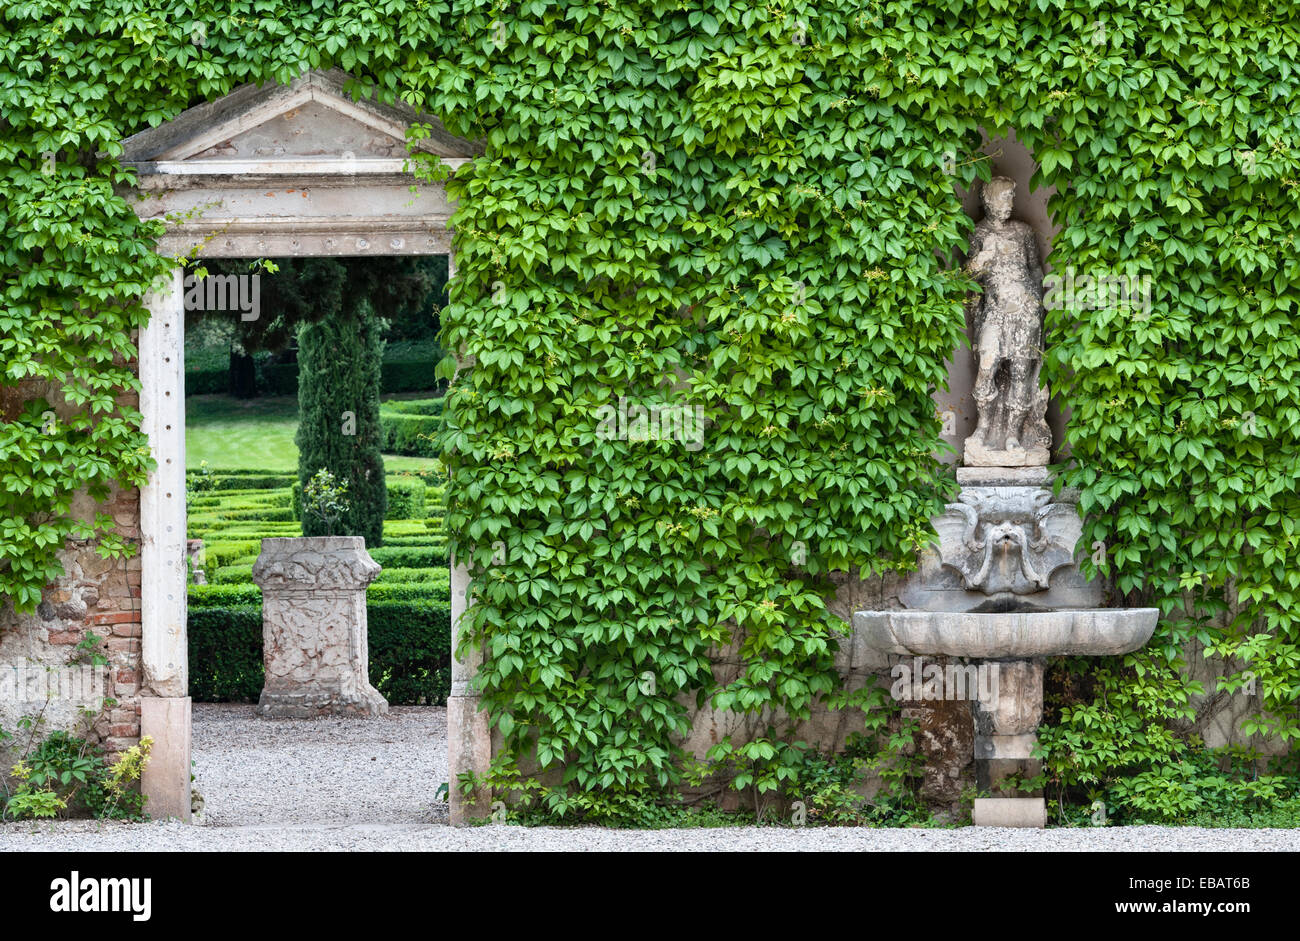 The Renaissance Gardens Of The Giardino Giusti Verona